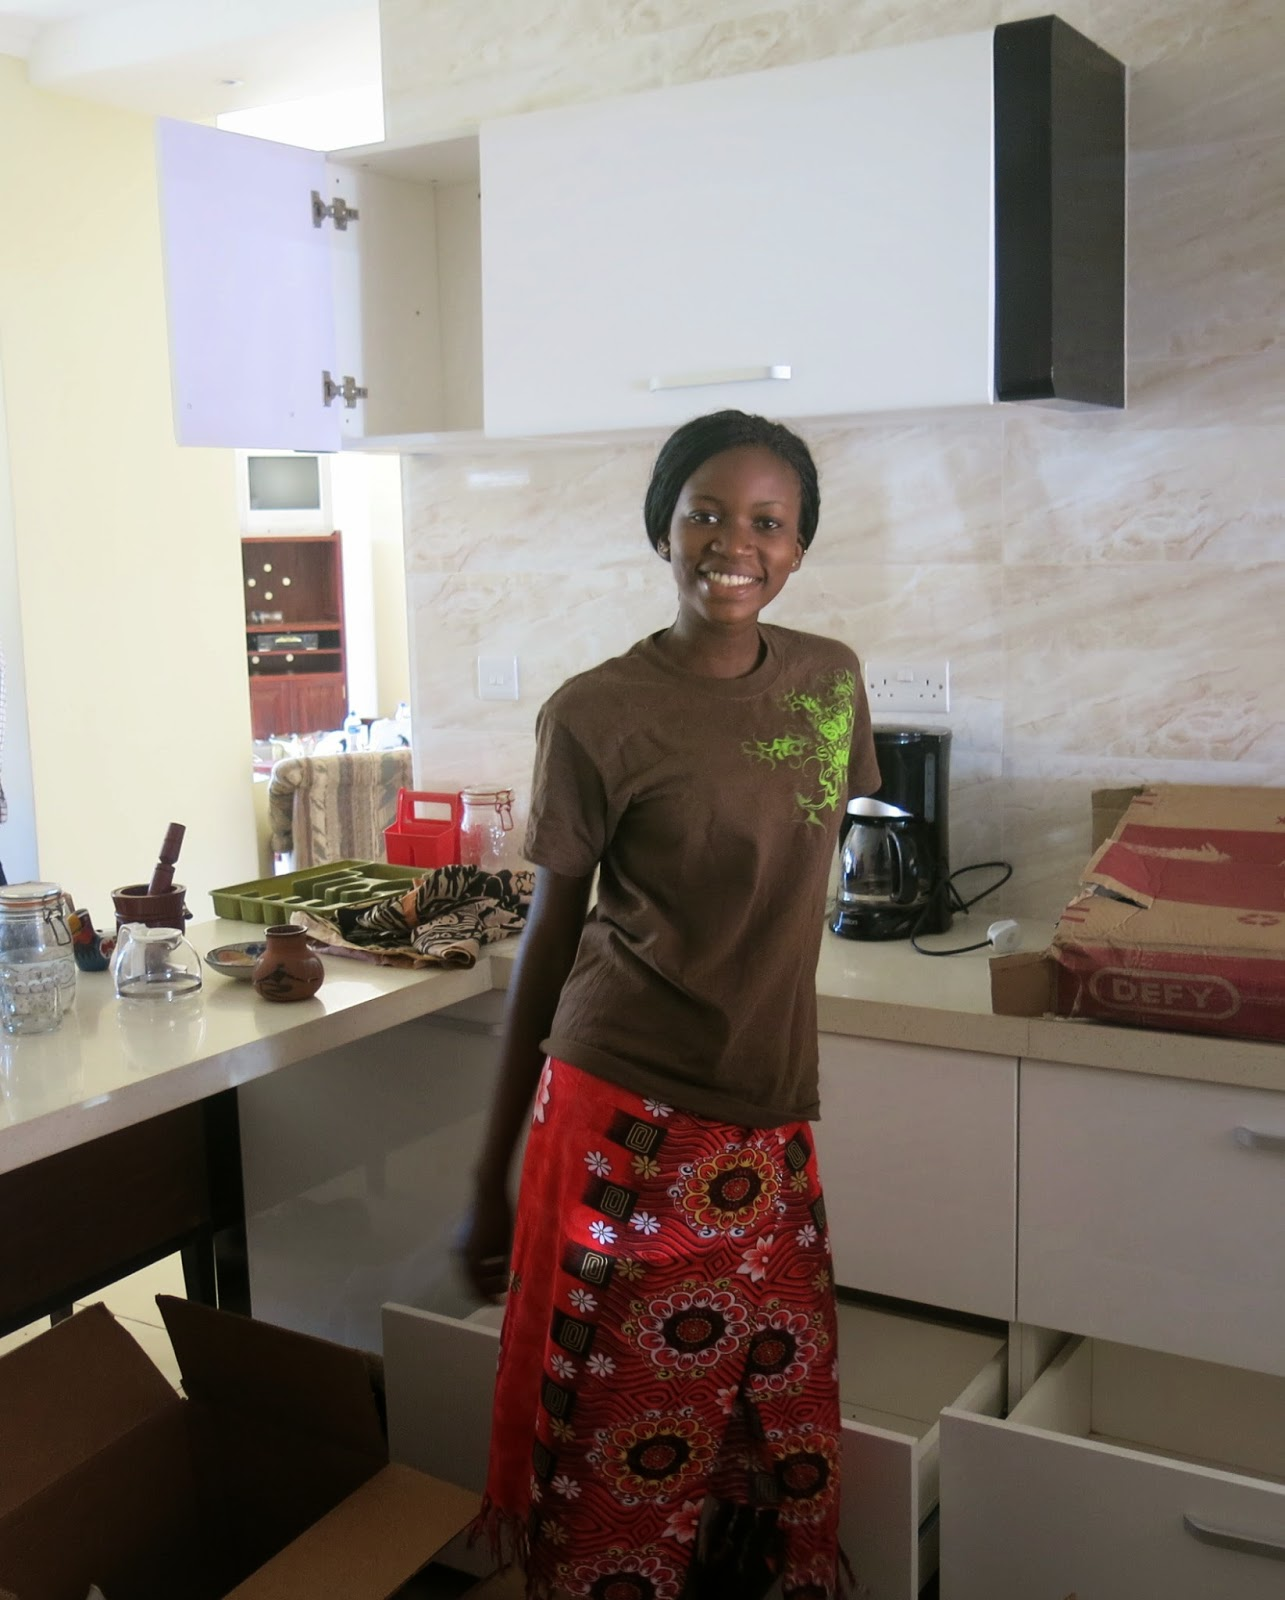 Kitchen Cabinets Zimbabwe: Moving Day Harare, New Visitors Arrive, More Chickens